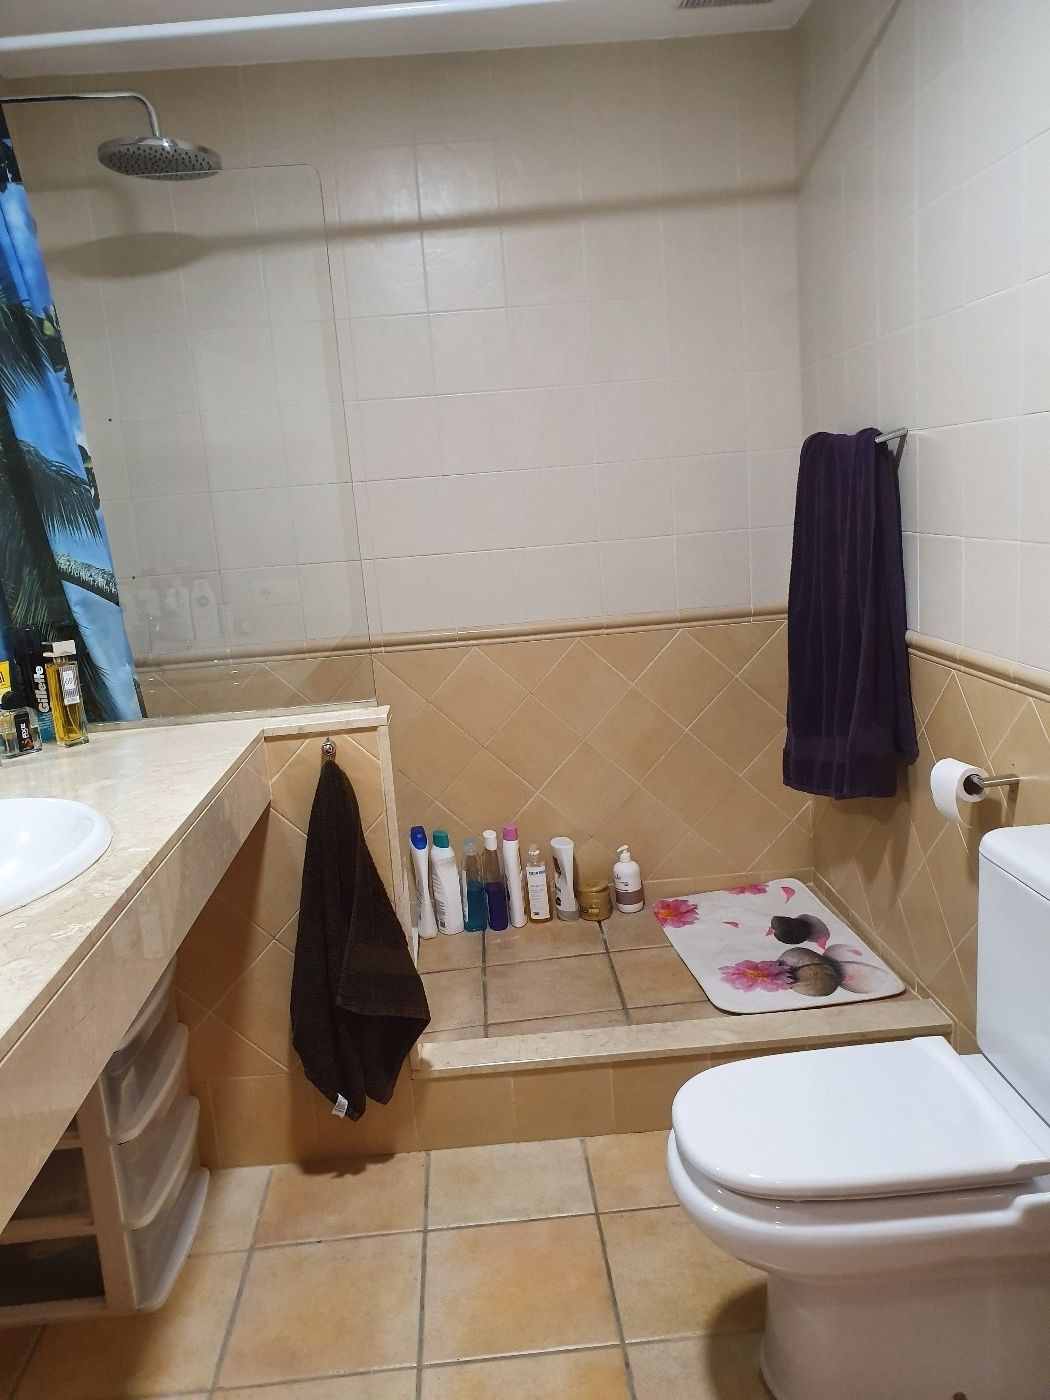 Semi detached house  Binisalem. Adosado, con garaje, 3h, 2b, pis